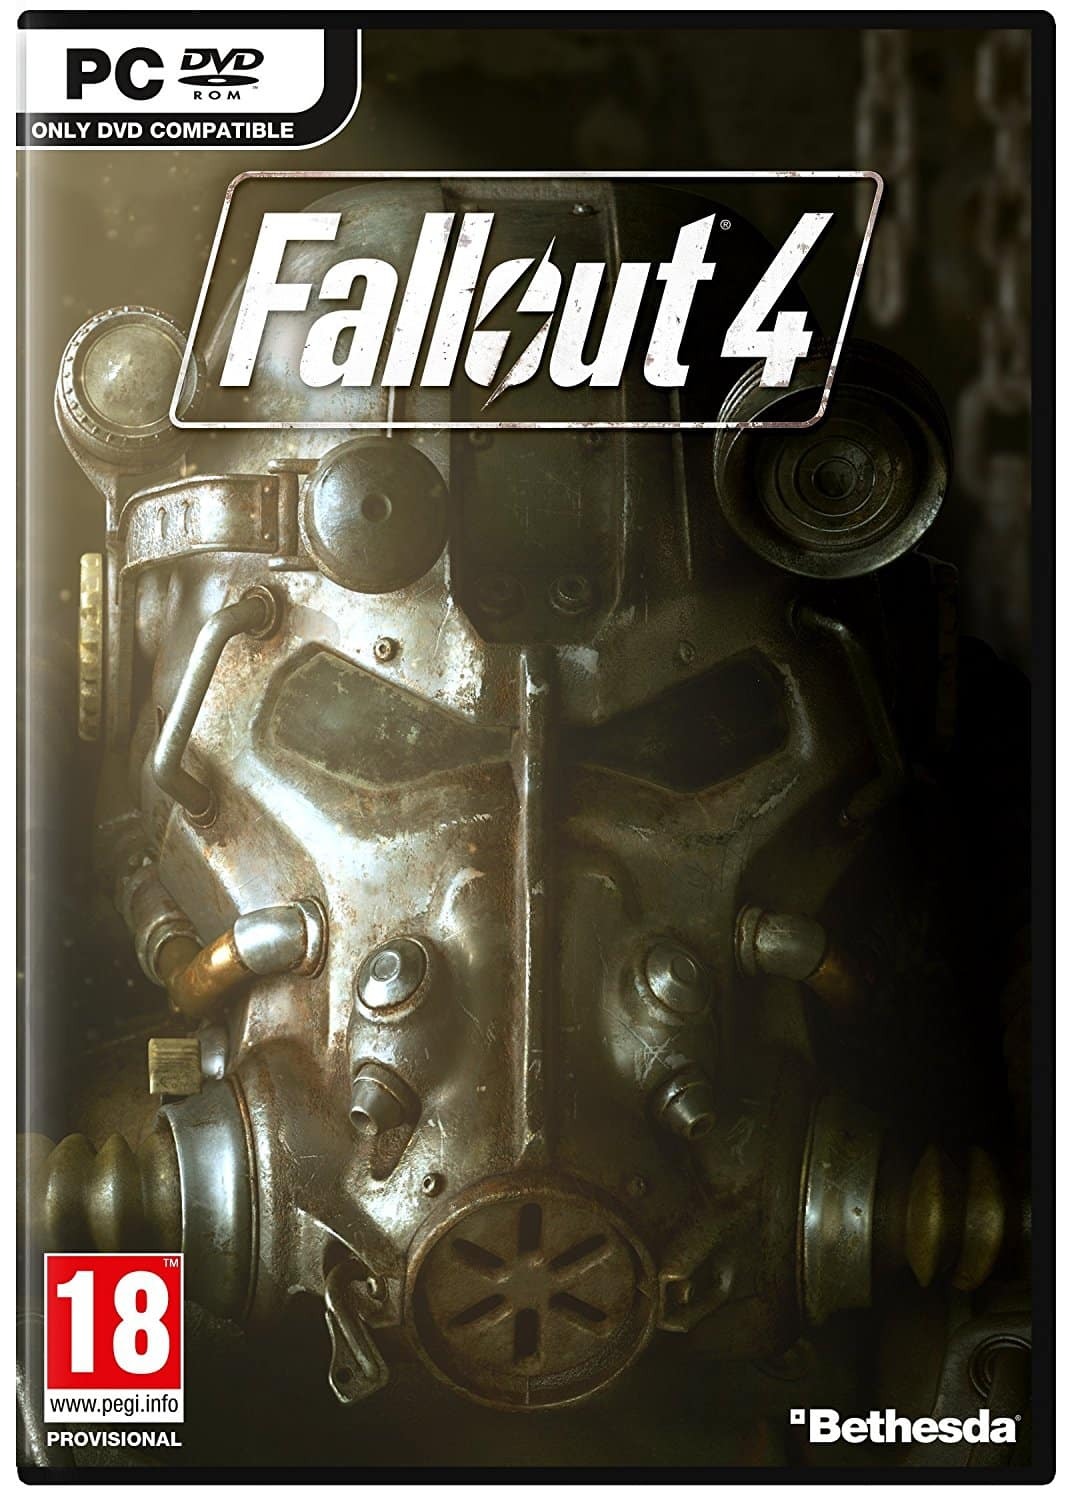 Fallout 4 PC - GOTY Edition (21.43$) or Standard Version (9.37$)